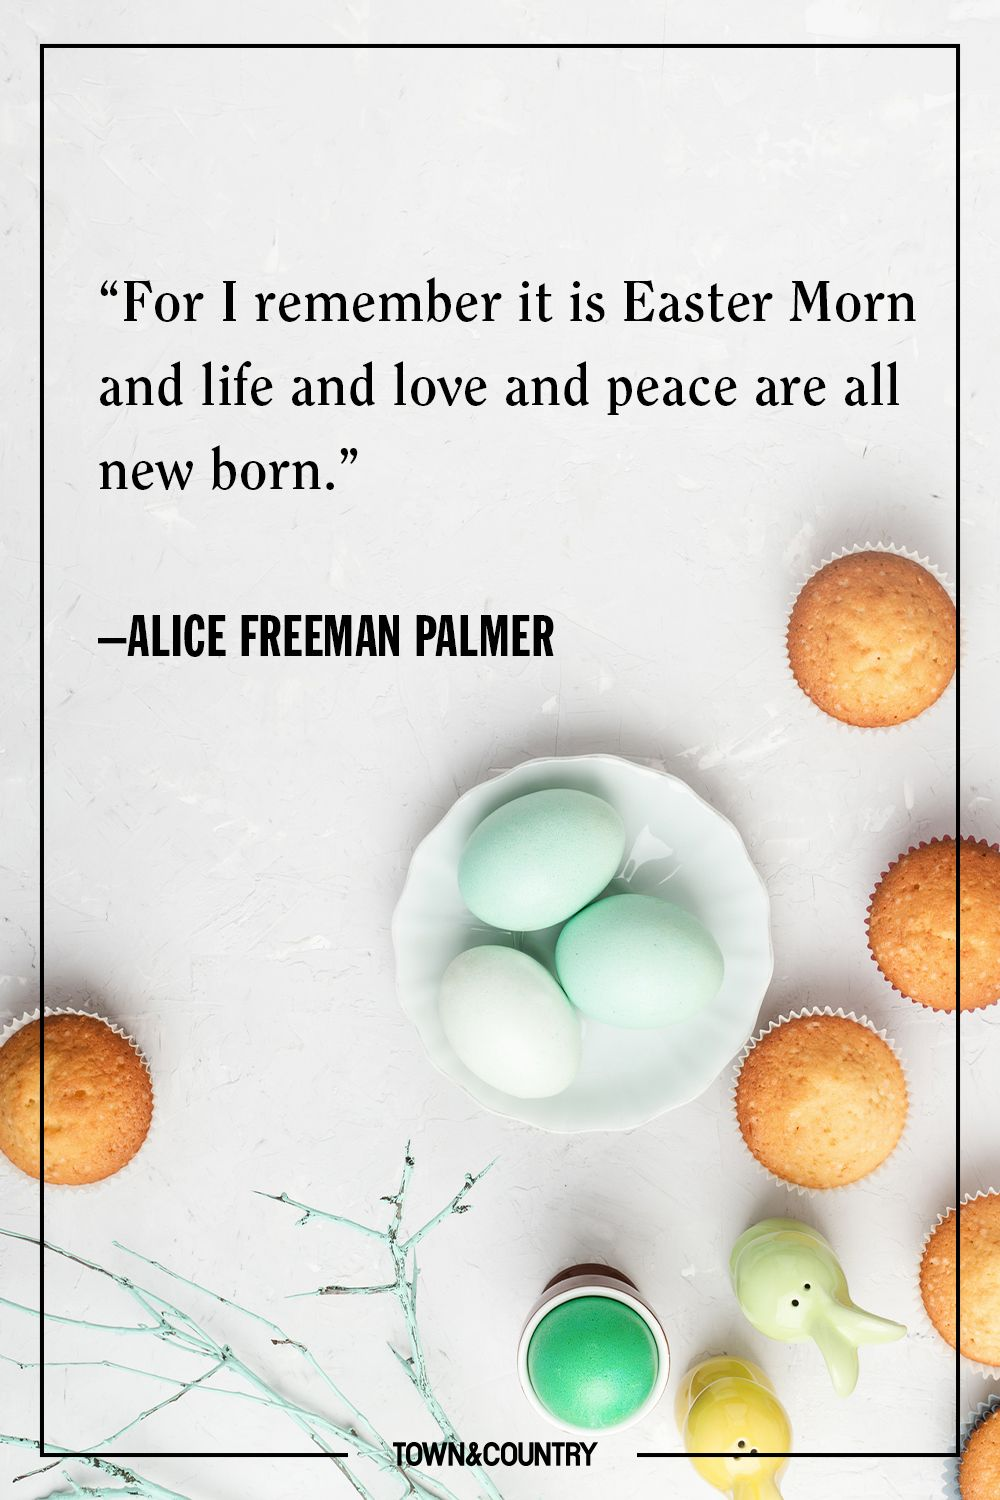 25 Best Easter Quotes - Inspiring Easter Sayings for the 2020 Holiday